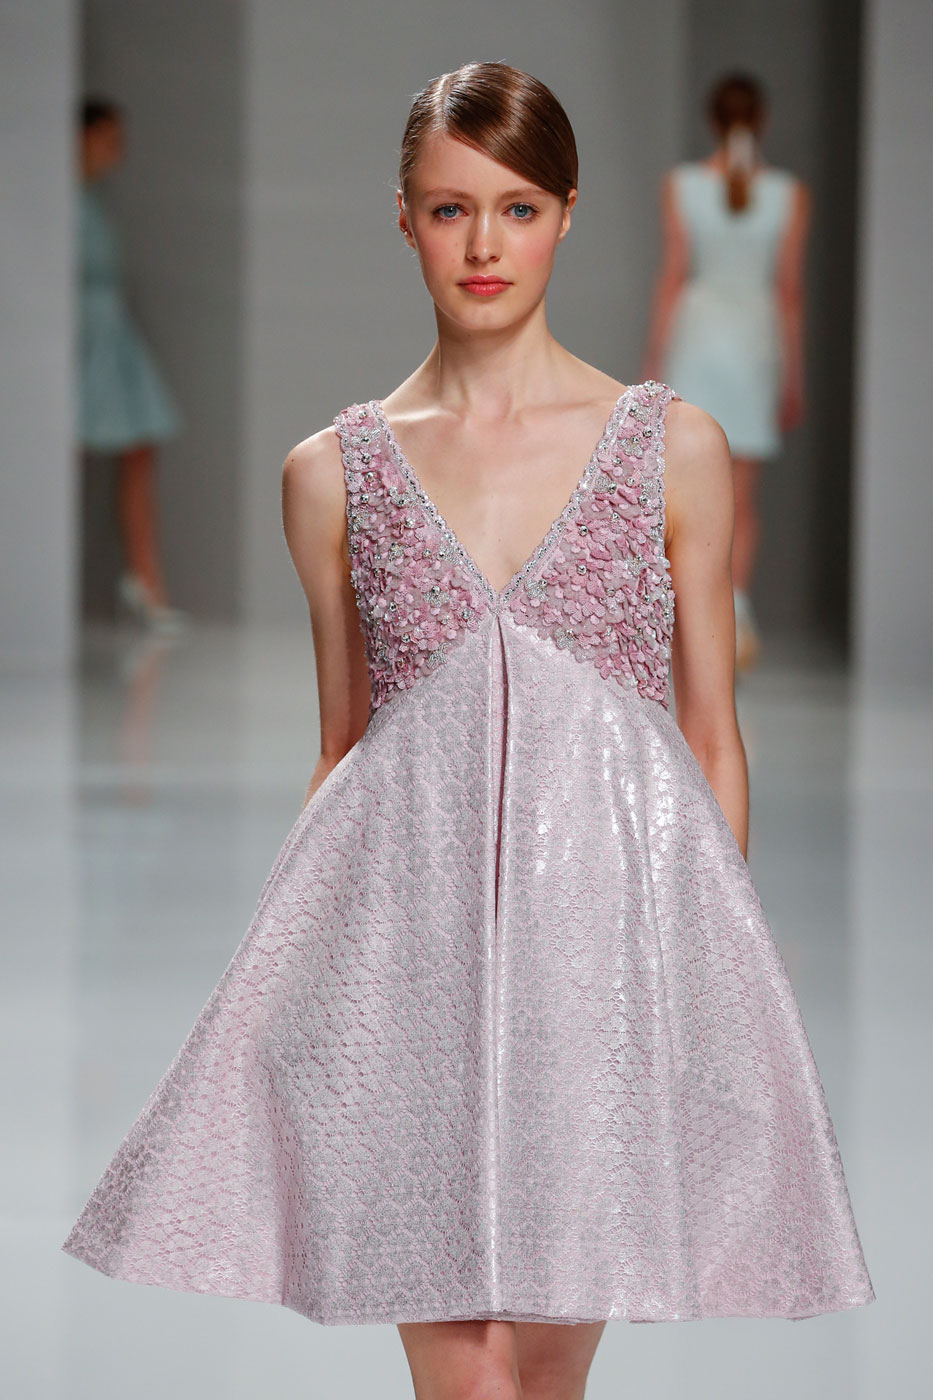 Georges-Hobeika-fashion-runway-show-haute-couture-paris-spring-2015-the-impression-10